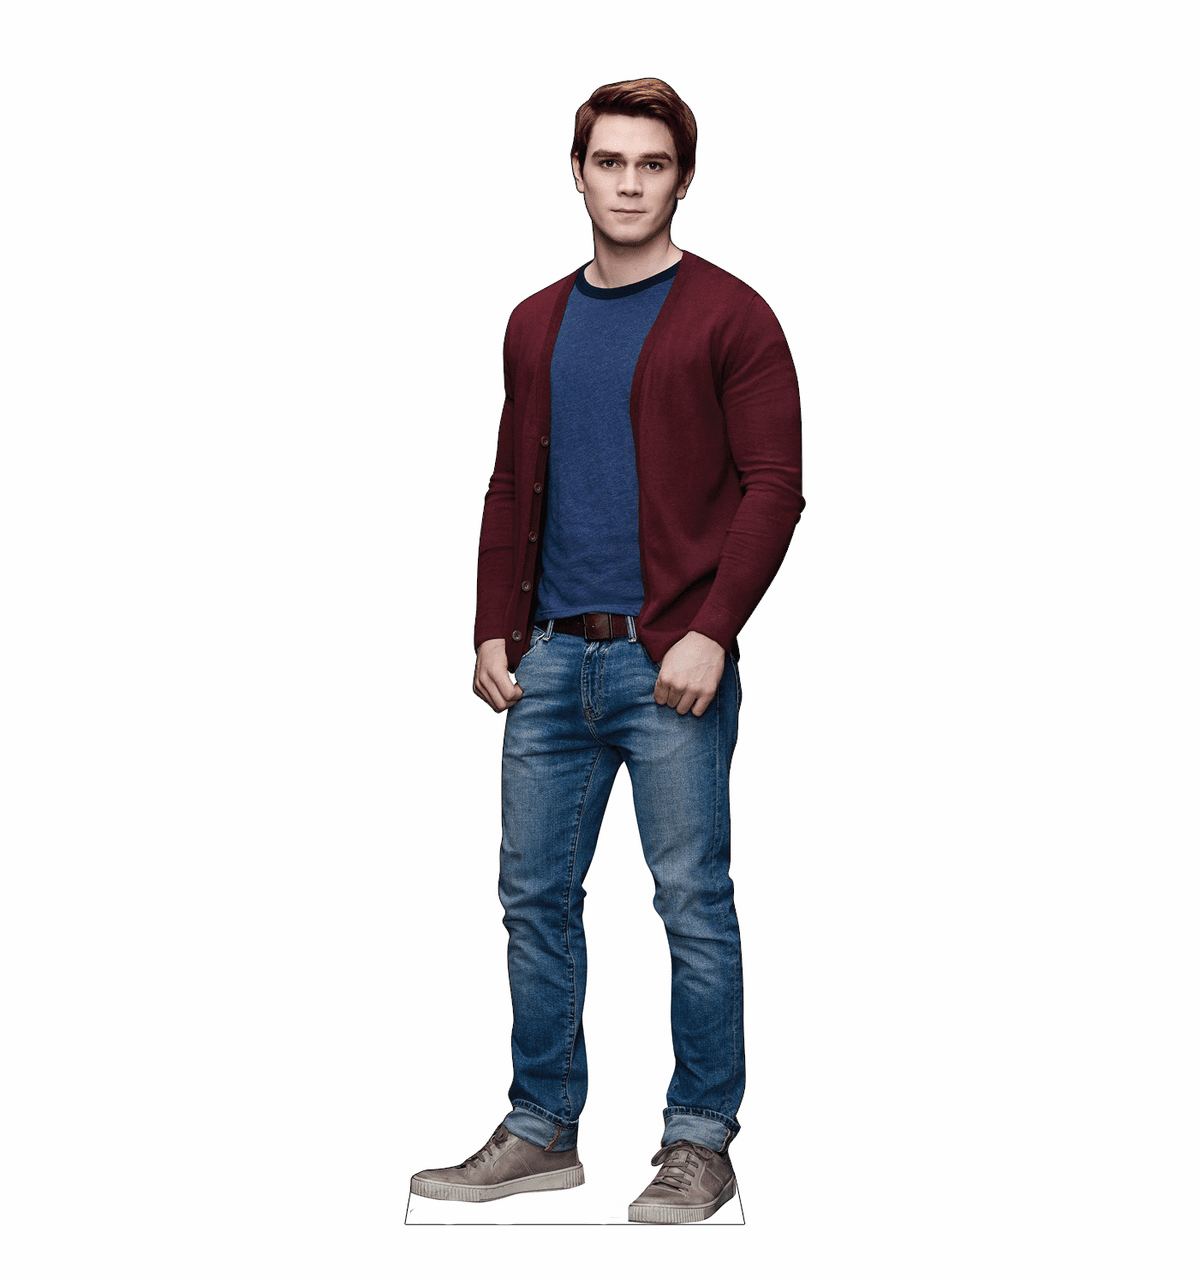 Life Size Riverdale Standees